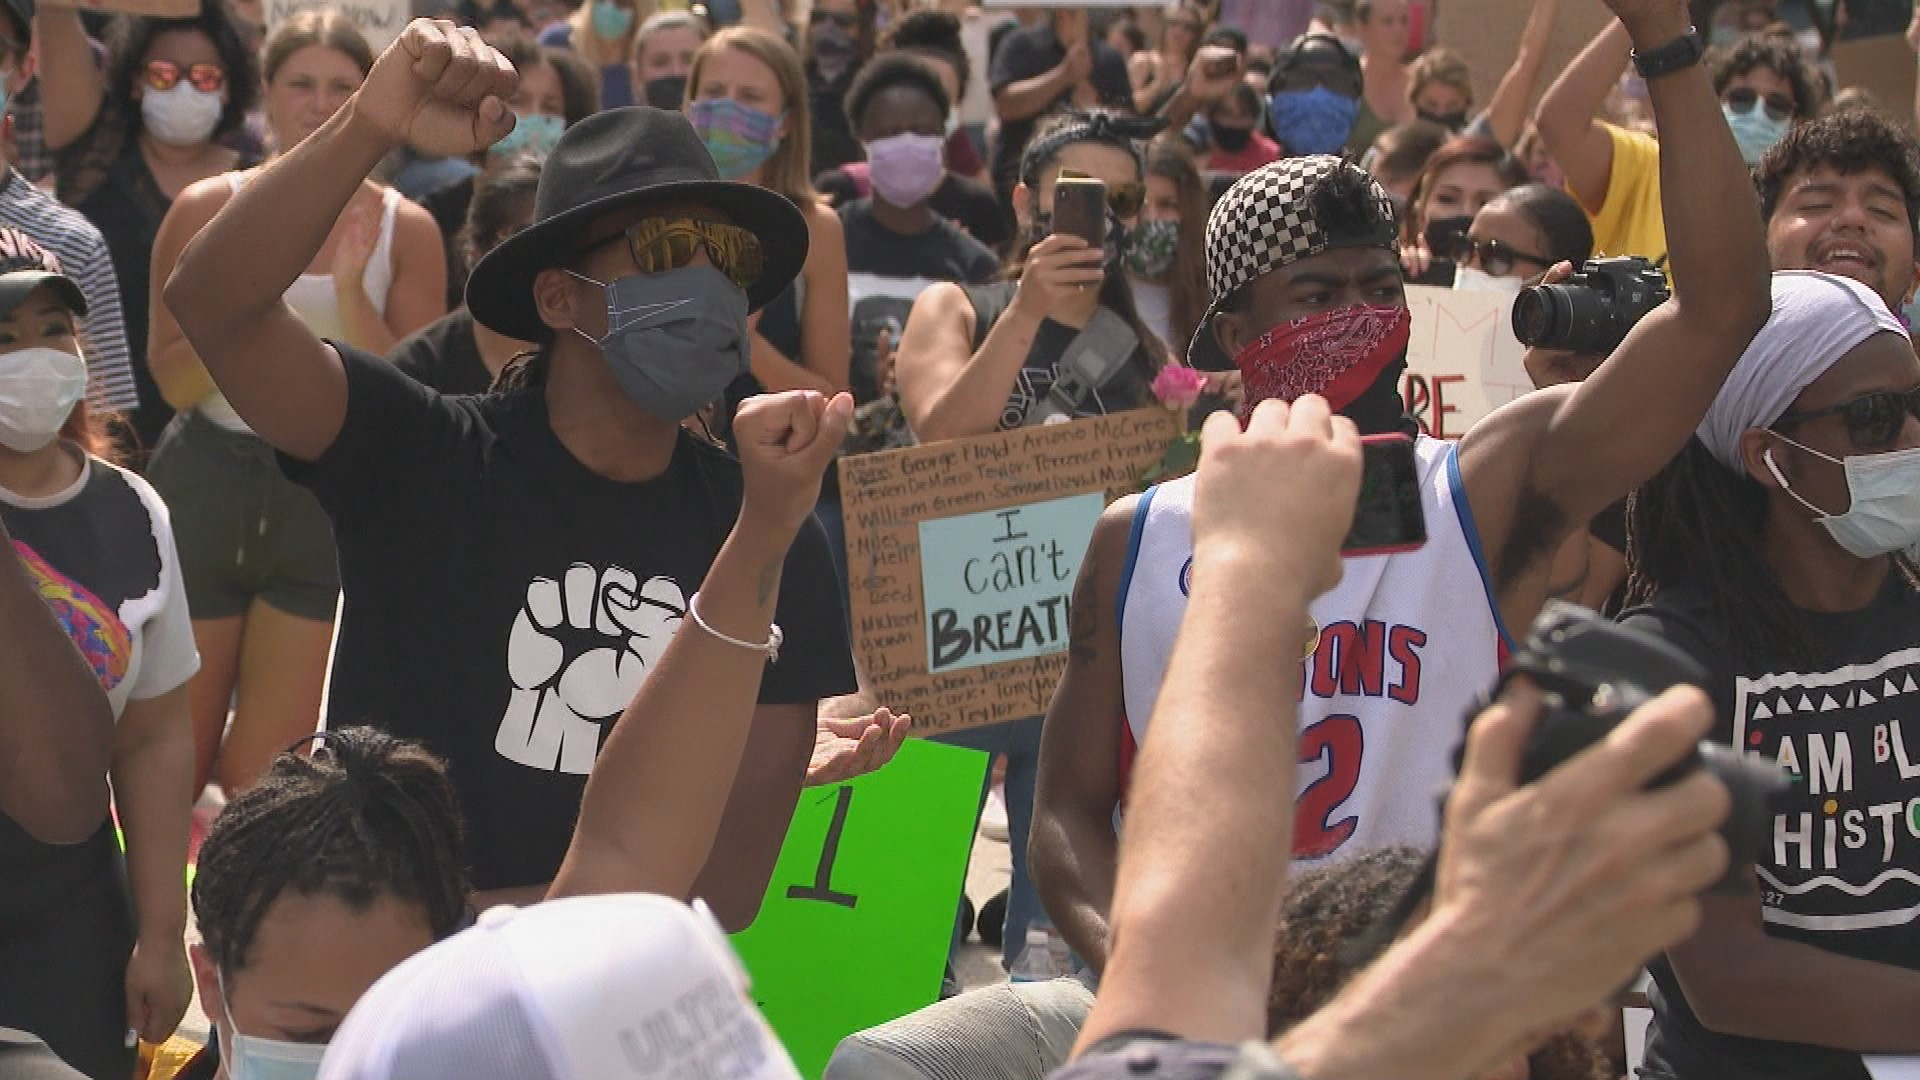 Vocal protesters marched through downtown Grand Rapids on June 3, 2020, advocating for change. (WWMT/Jason Heeres)